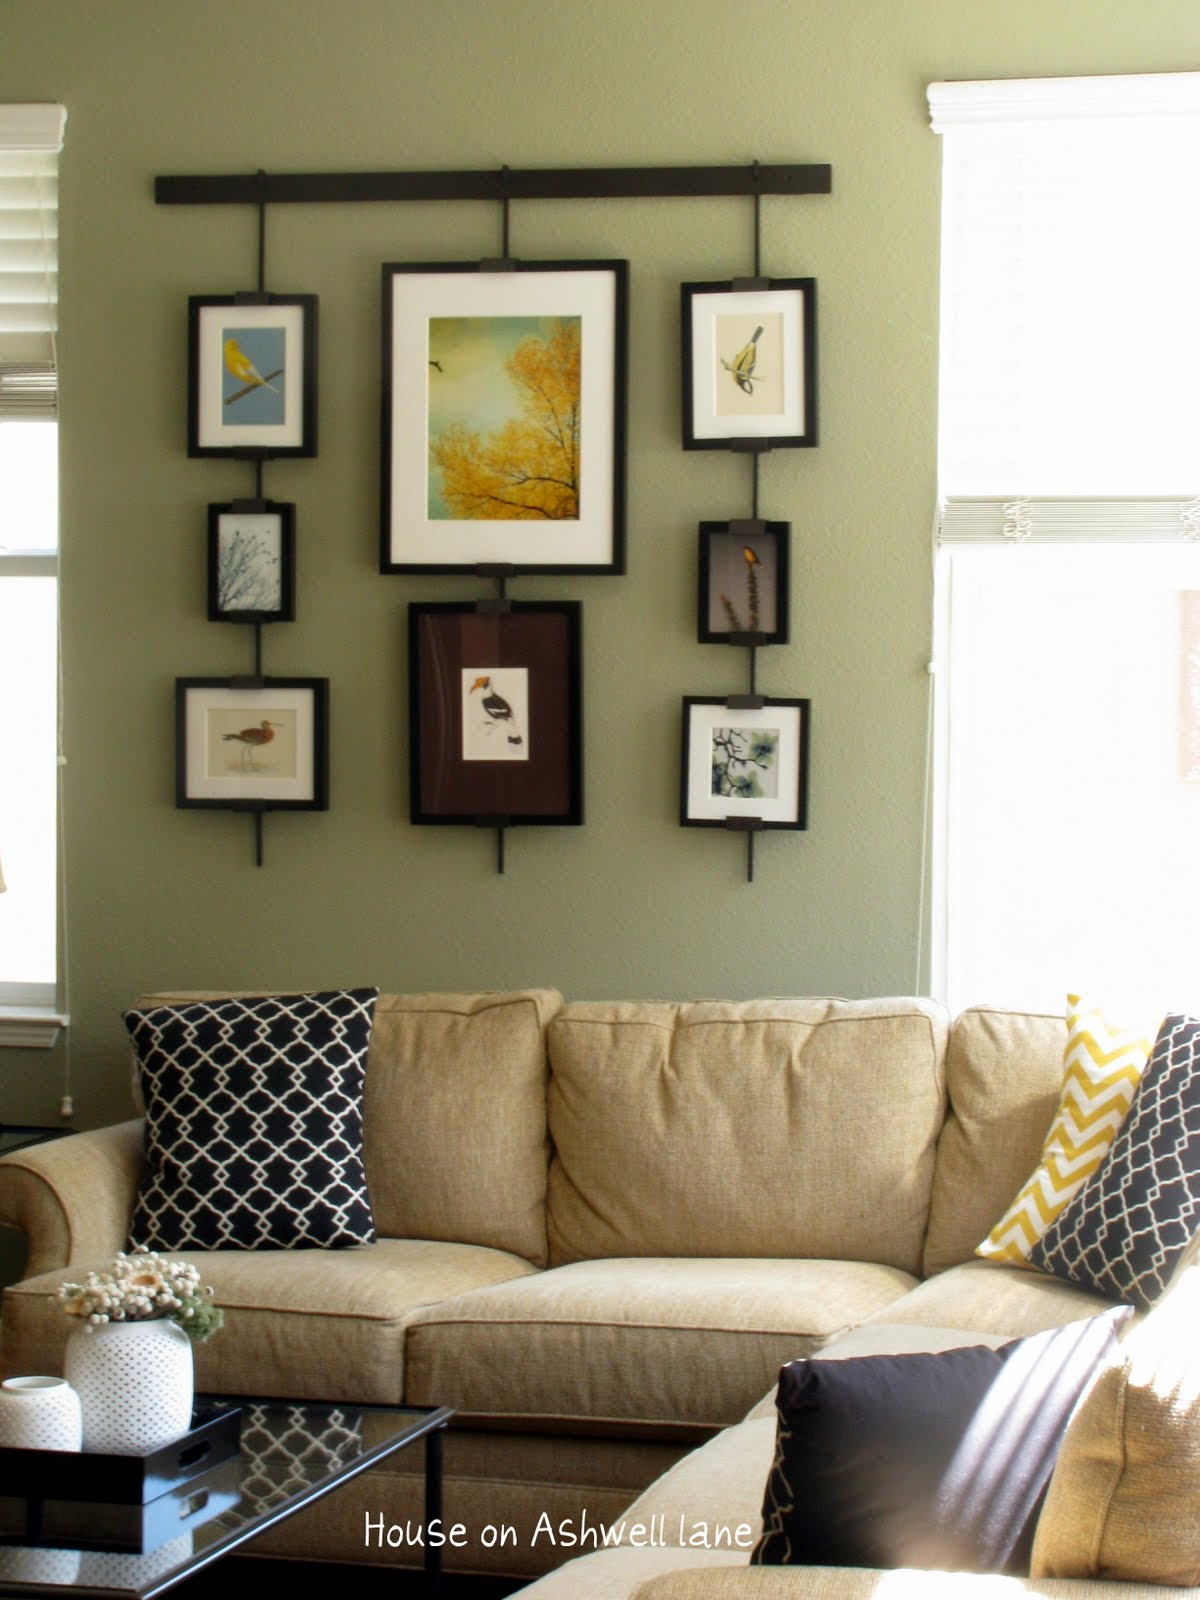 House on ashwell lane family room art gallery wall - Family room wall decor ideas ...